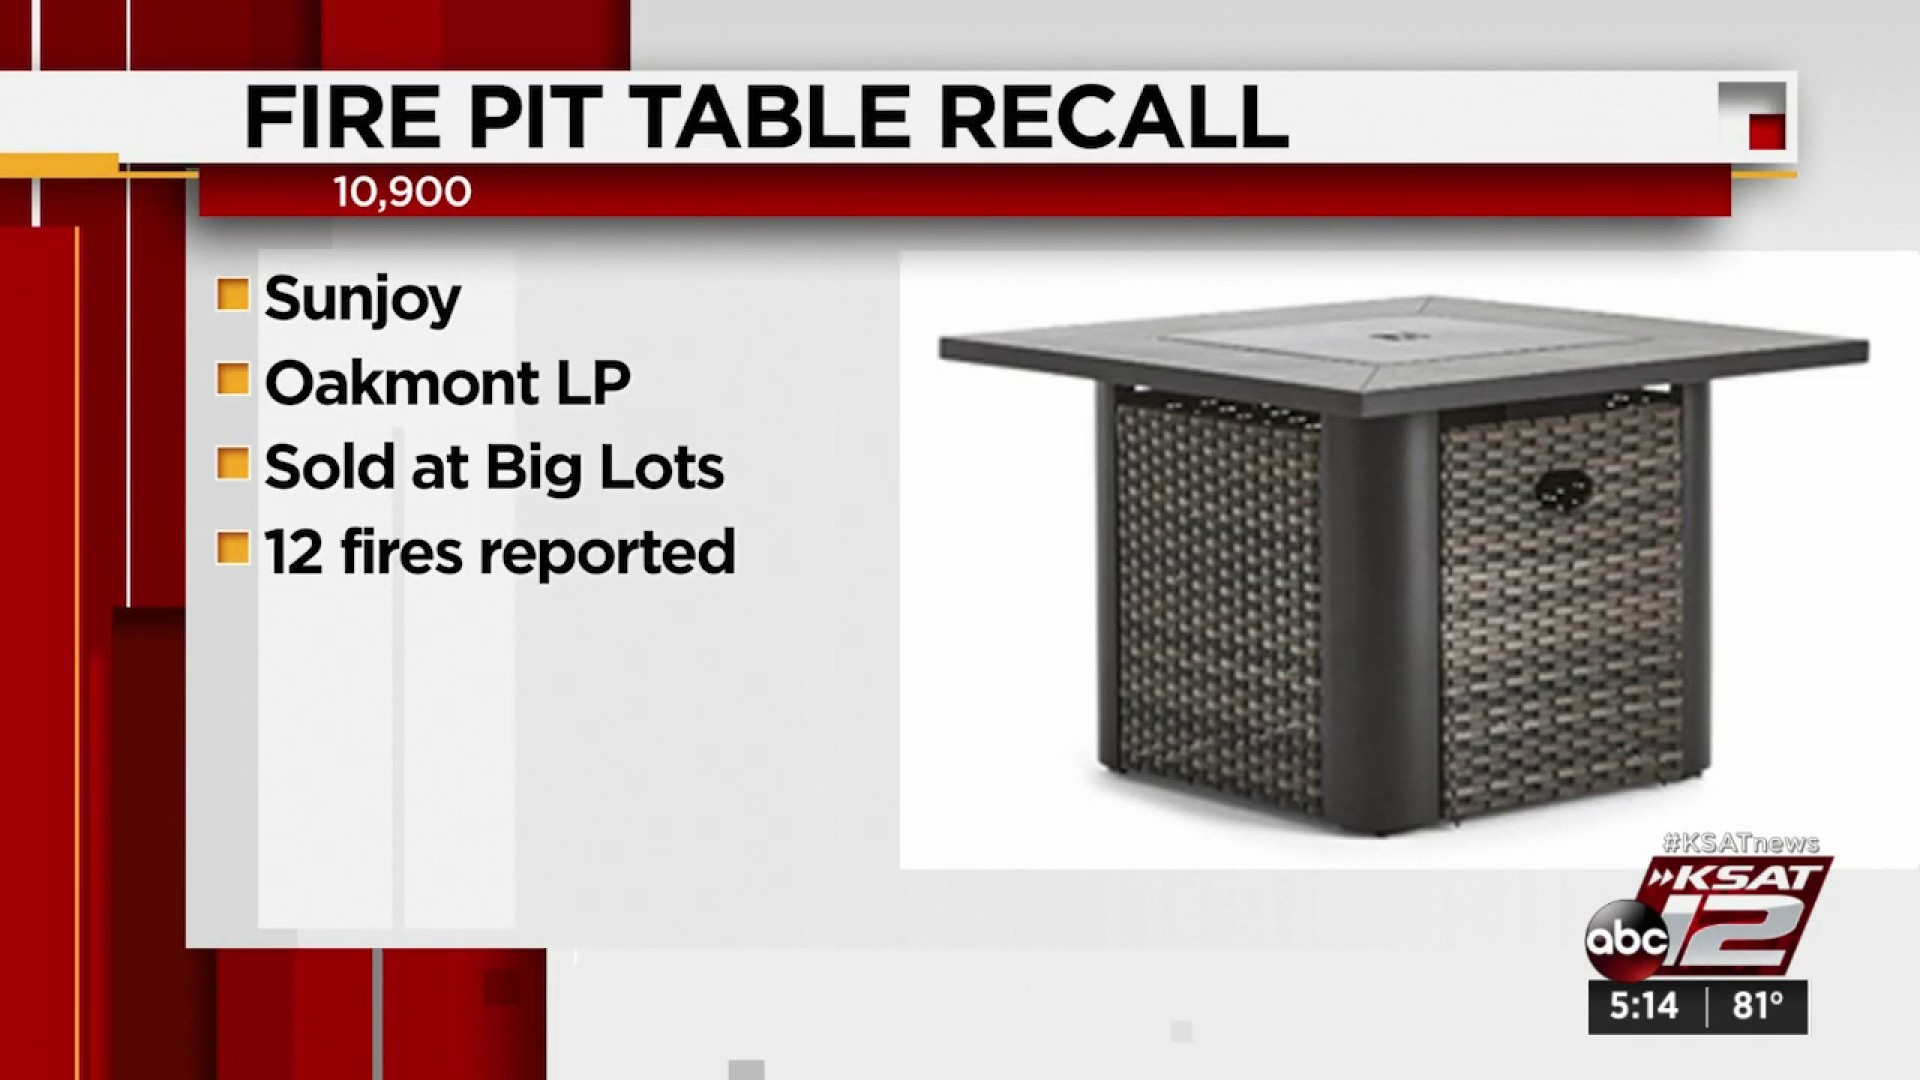 Fire Pit Tables Scented Candles Recalled